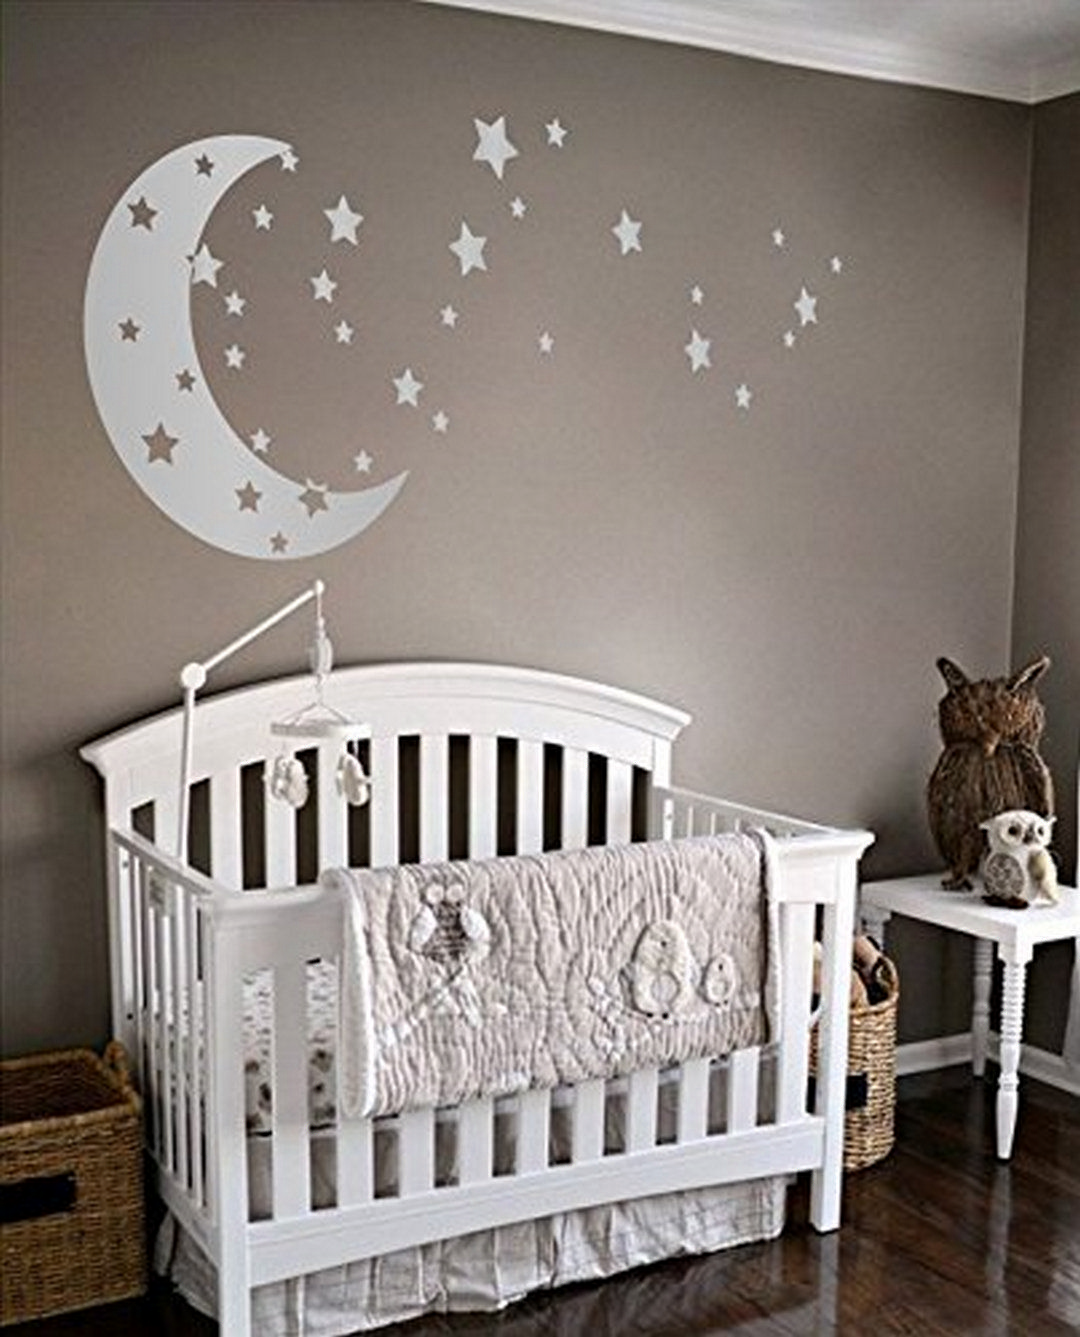 Nursery Ideas And Décor To Inspire You: 38 Dazzling Moon And Stars Nursery Decoration Ideas